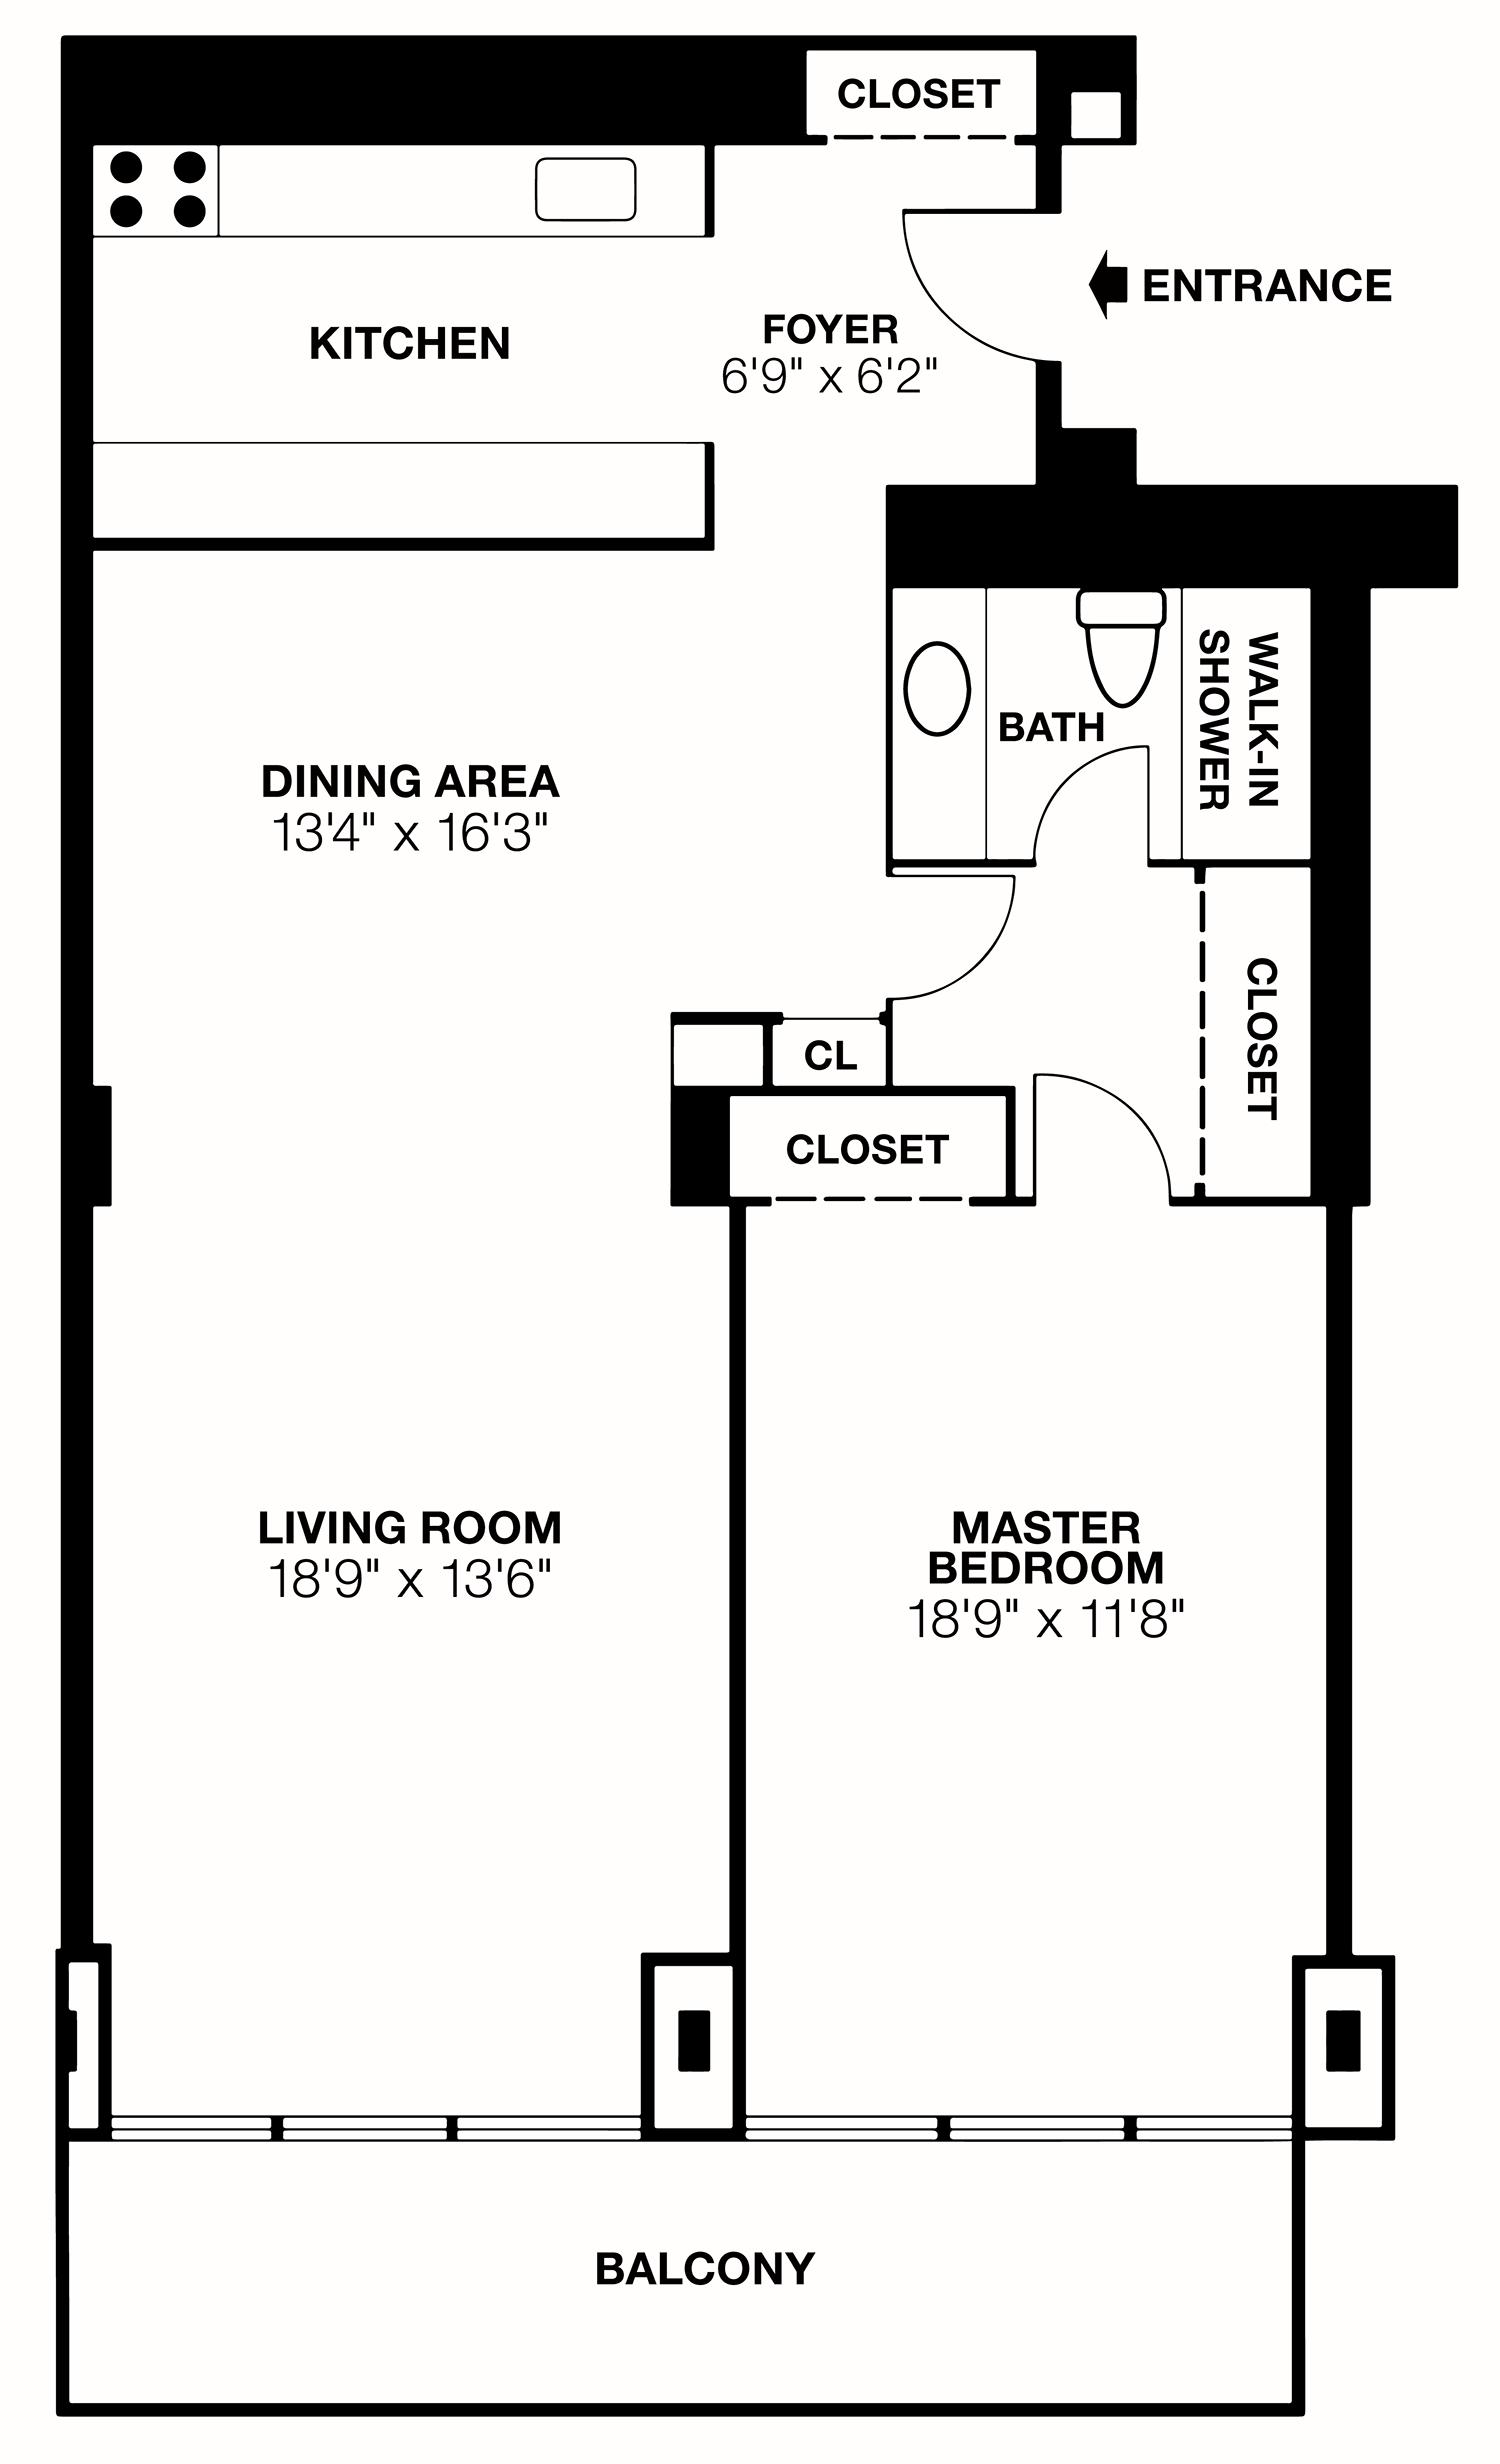 09-705 Watergate West Floor Plan with balcony.png